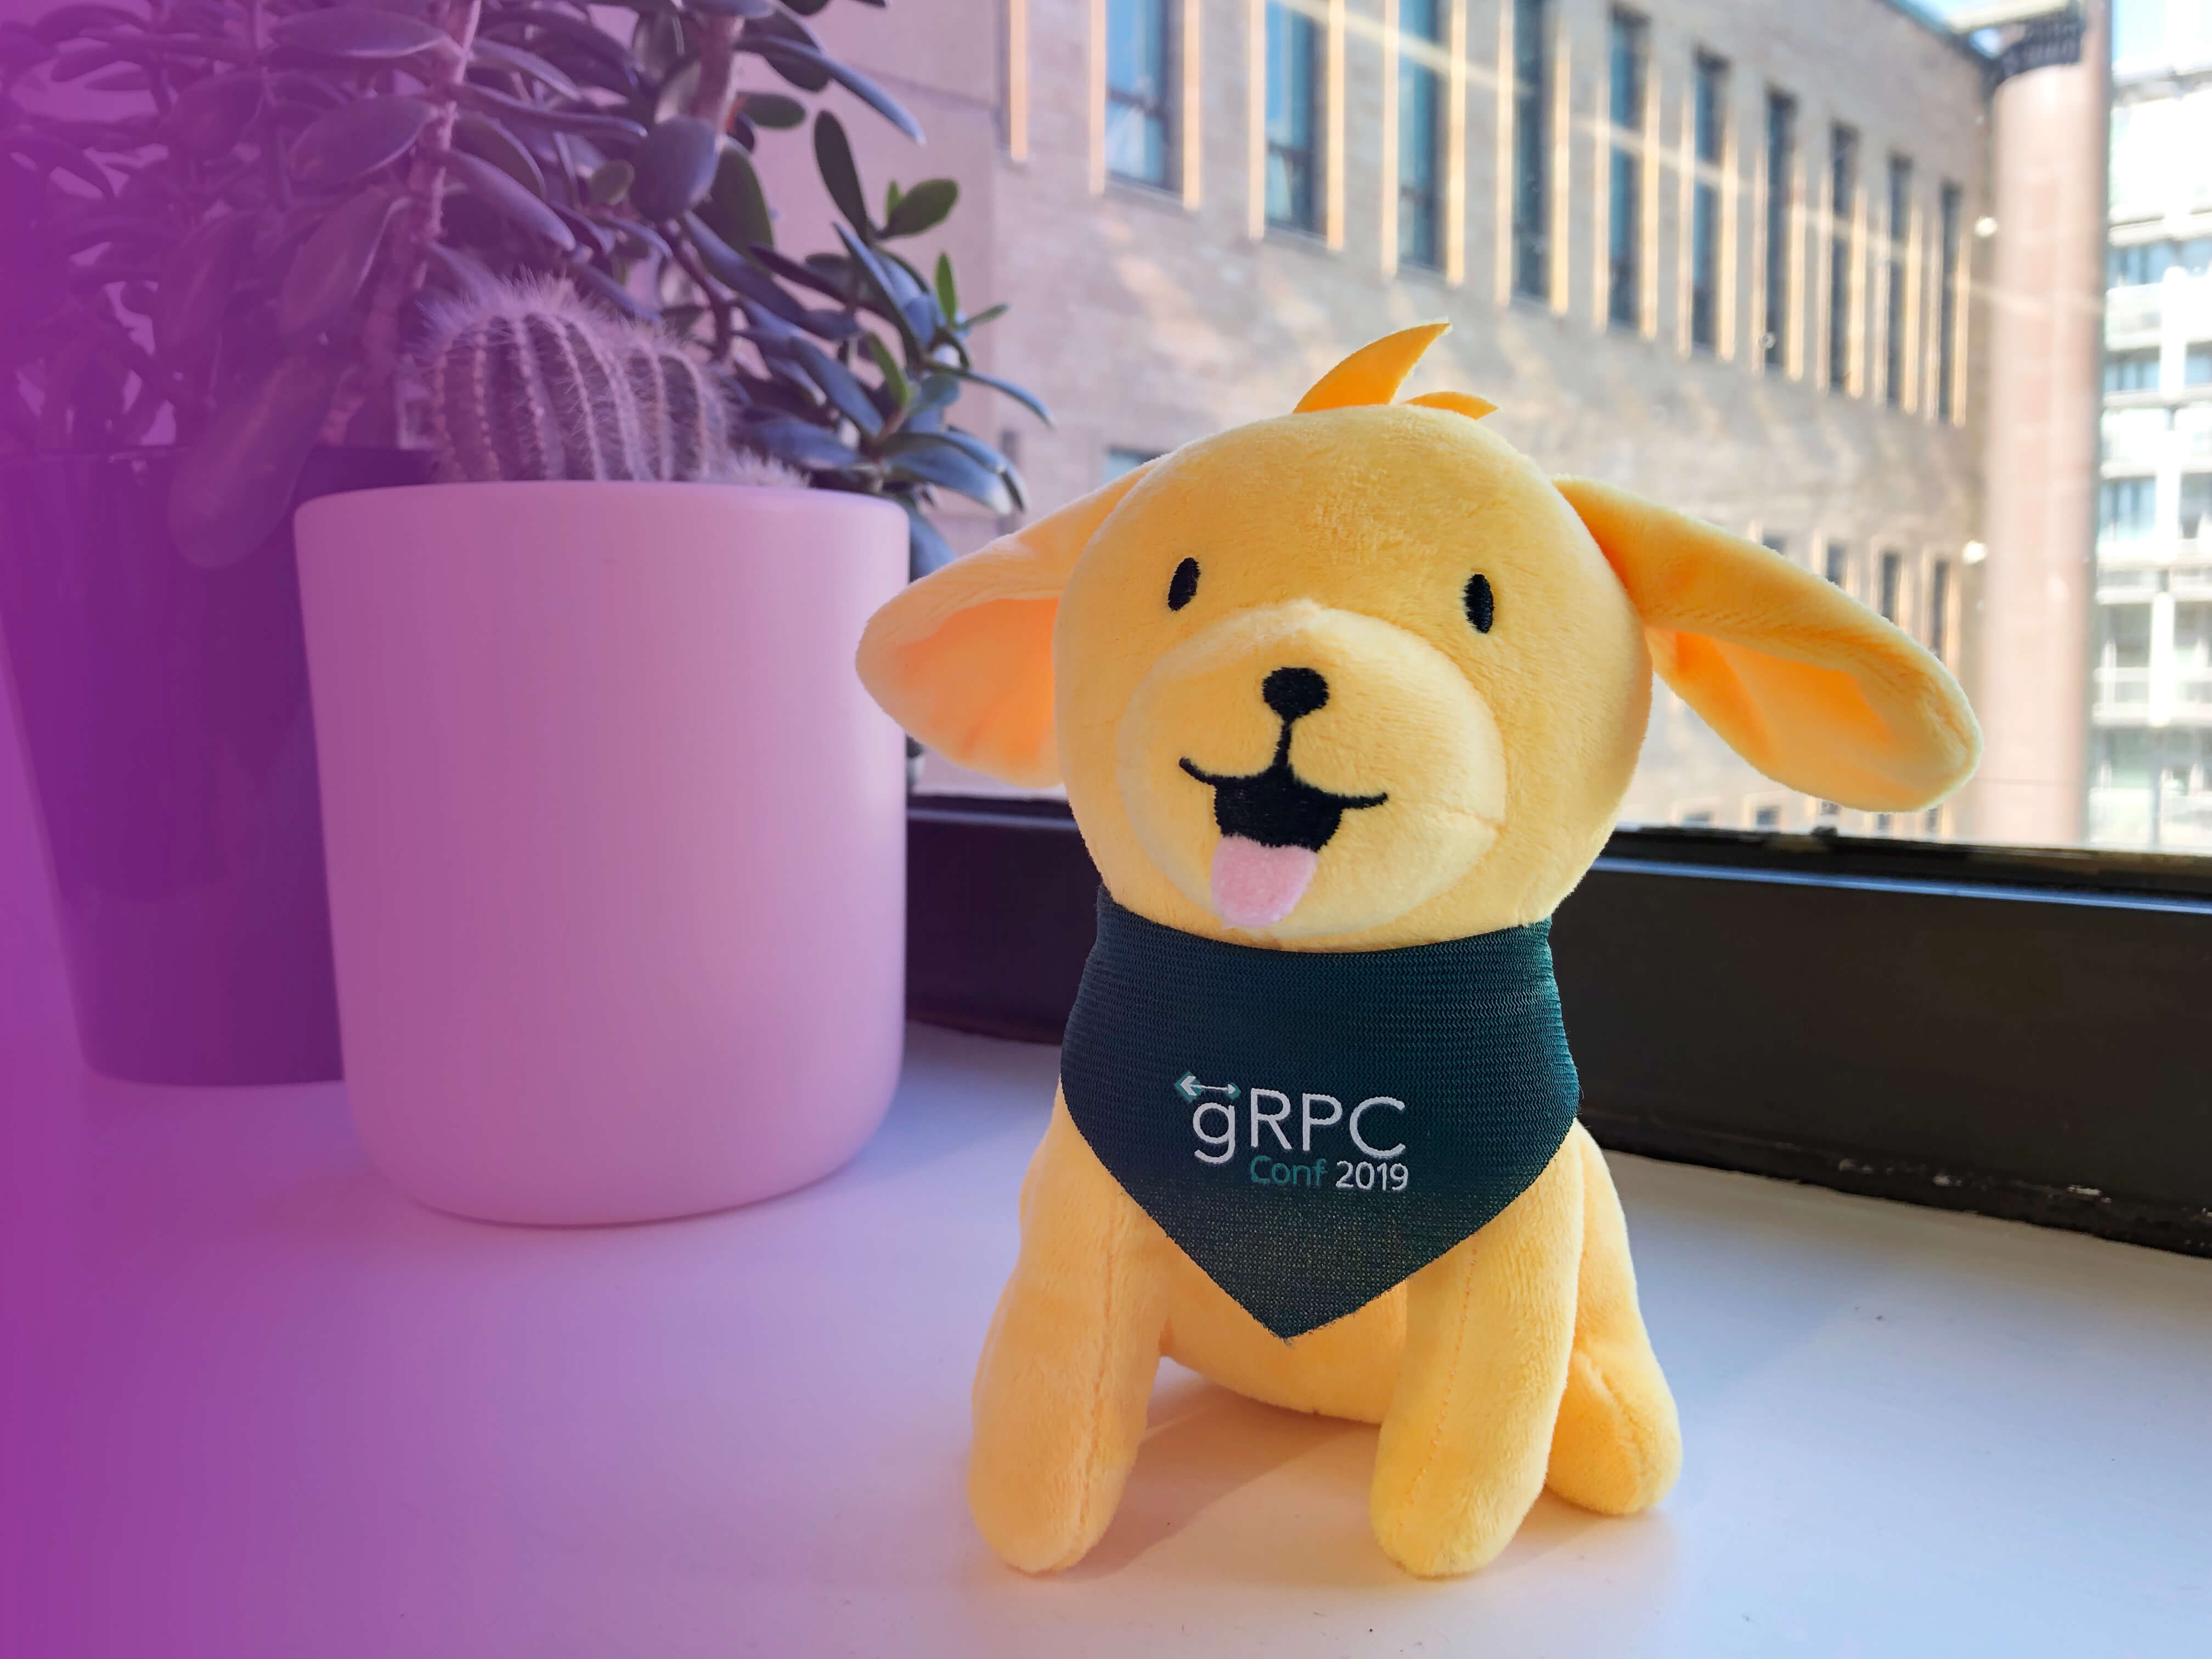 What We Learned from gRPC Conf 2019